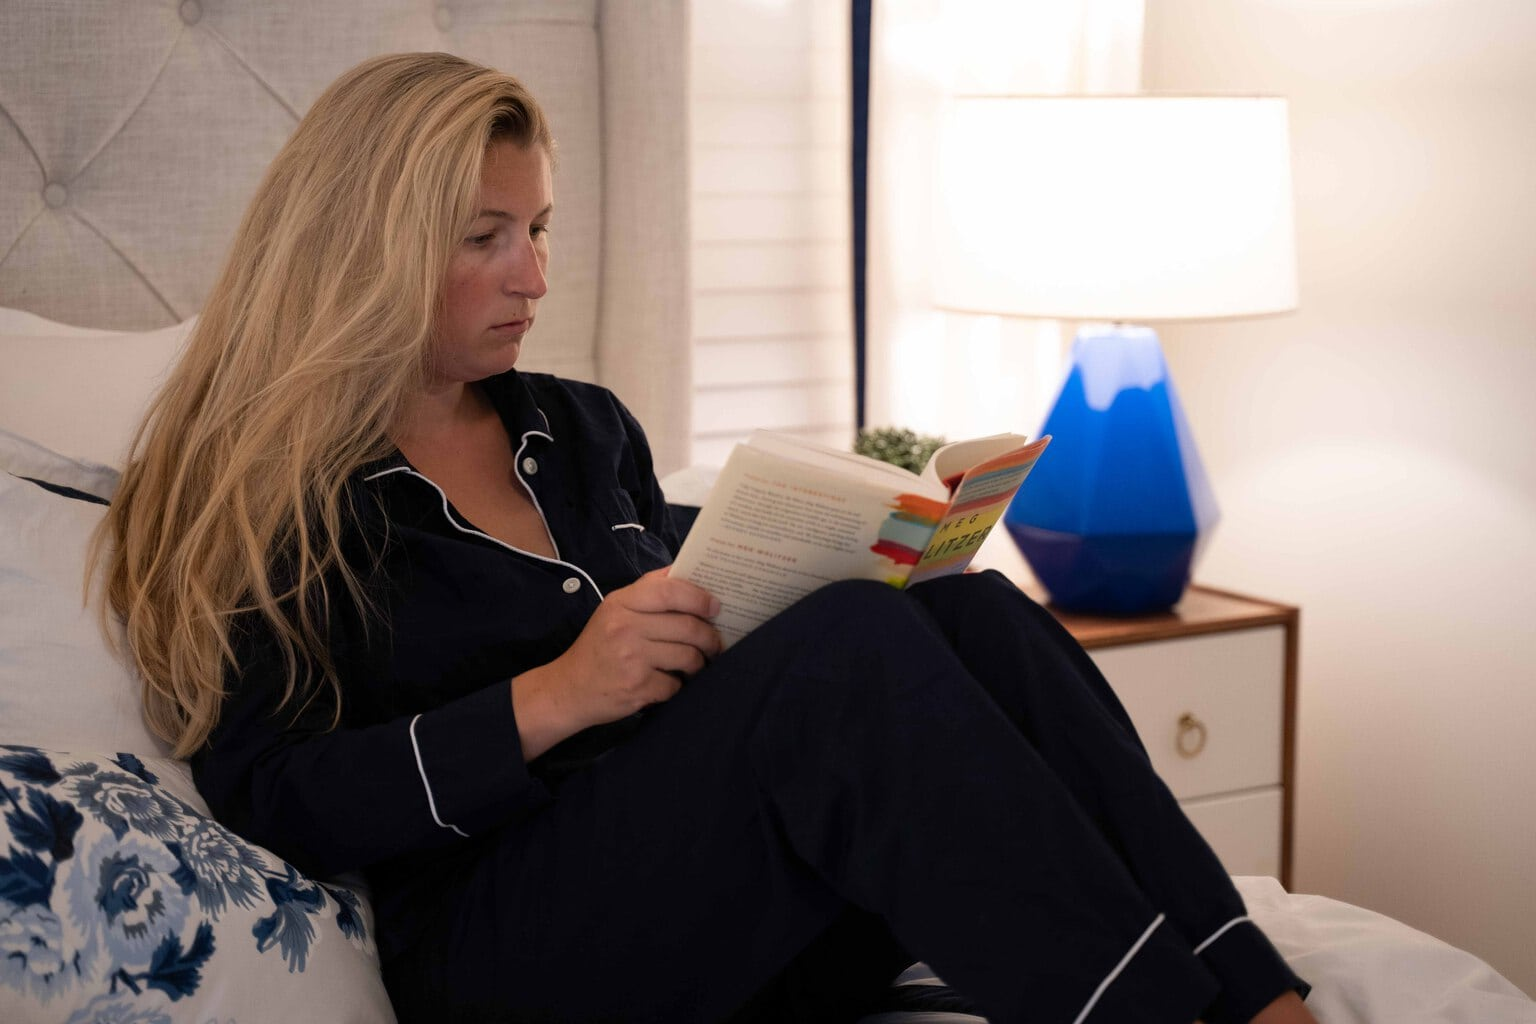 woman relaxing in bed reading a book with ambient lighting